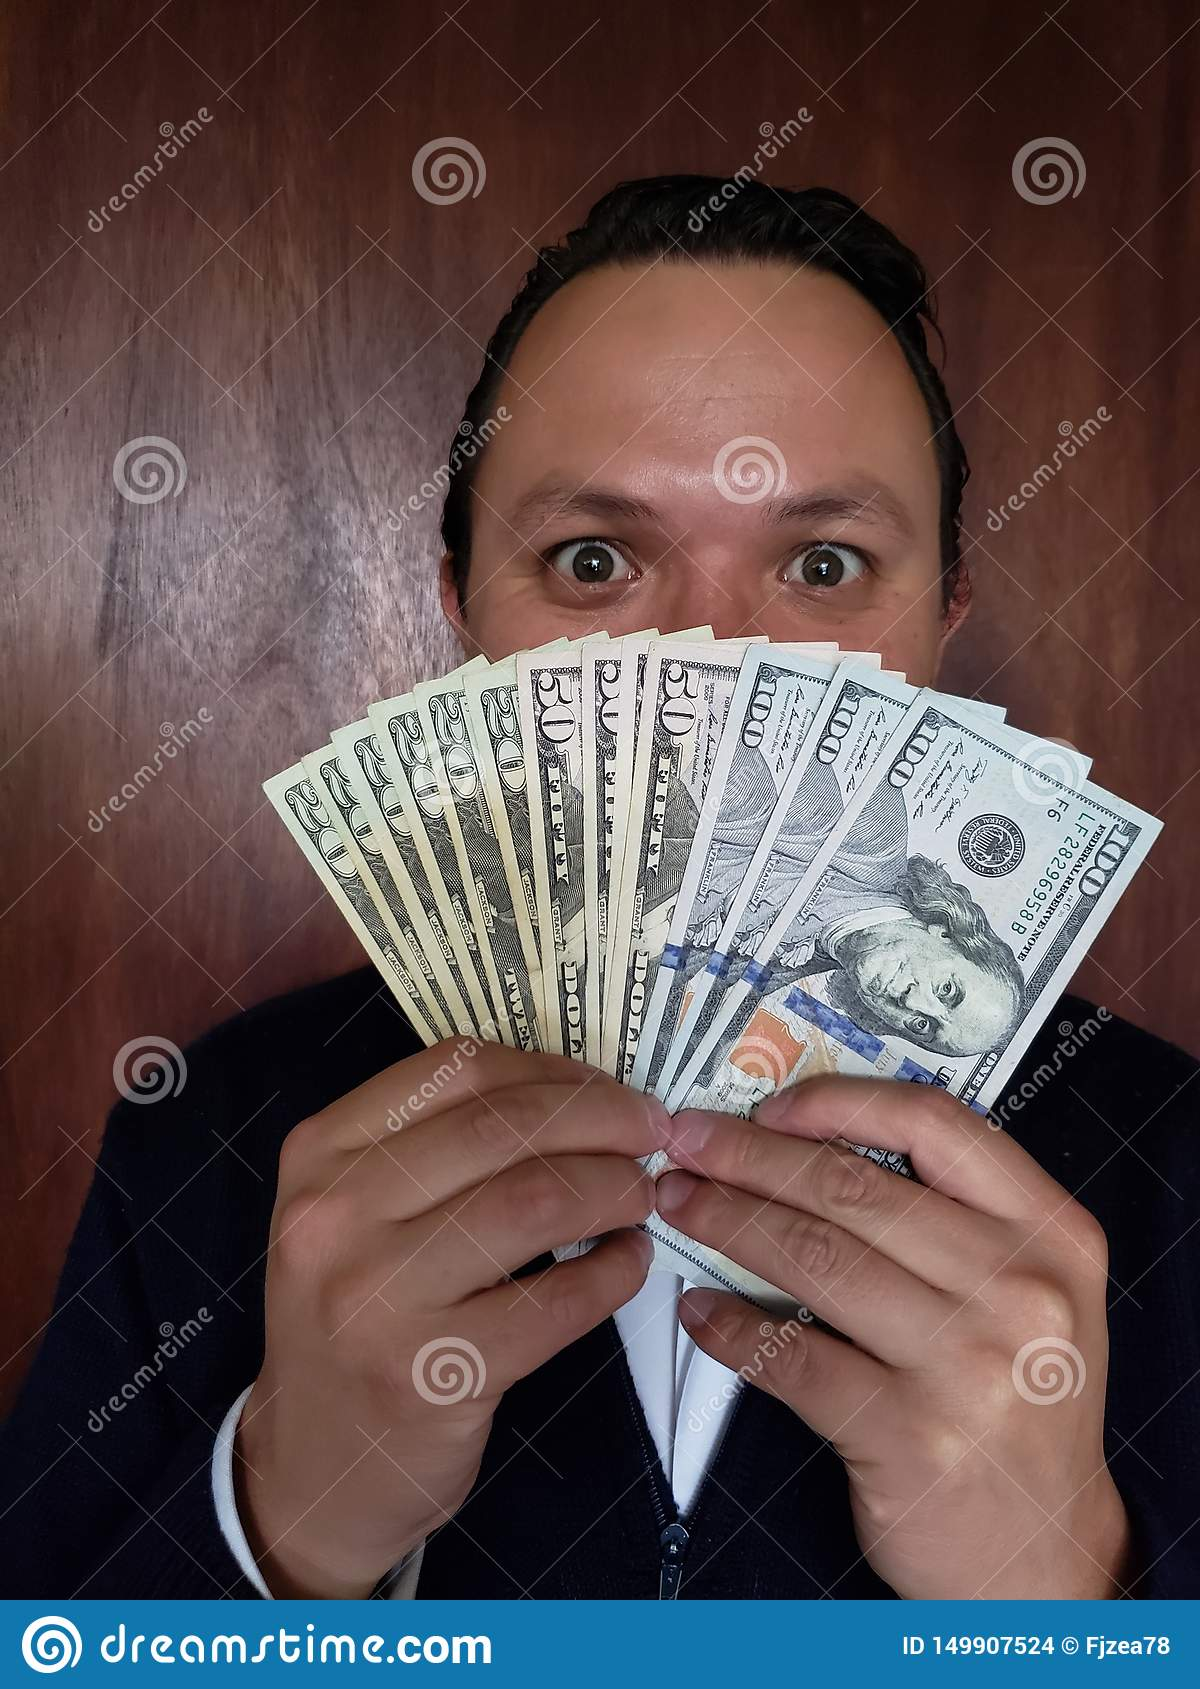 face with emotion expression of a young man and holding American banknotes